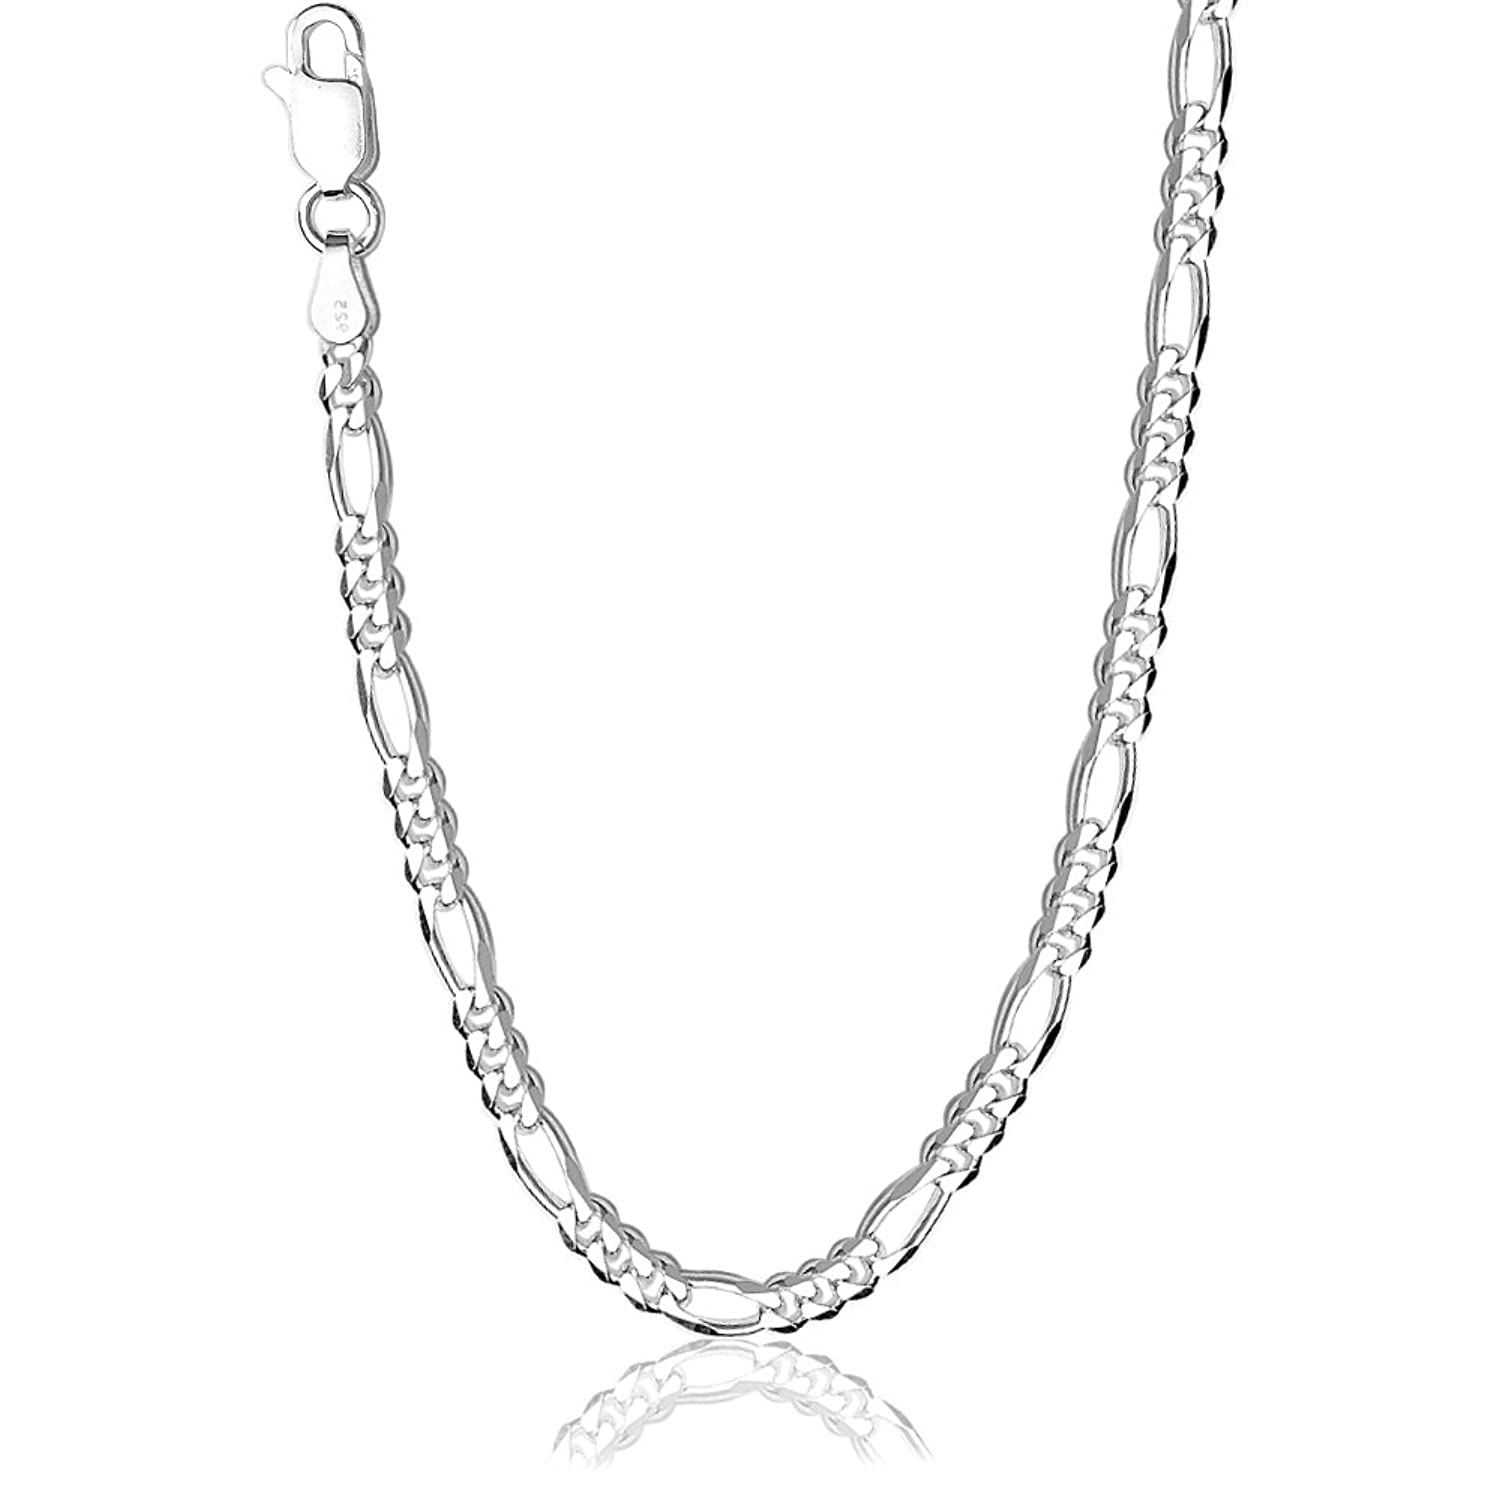 Taraash Neck Chain 925 Sterling Silver For Men AFGH1006C20IN ...